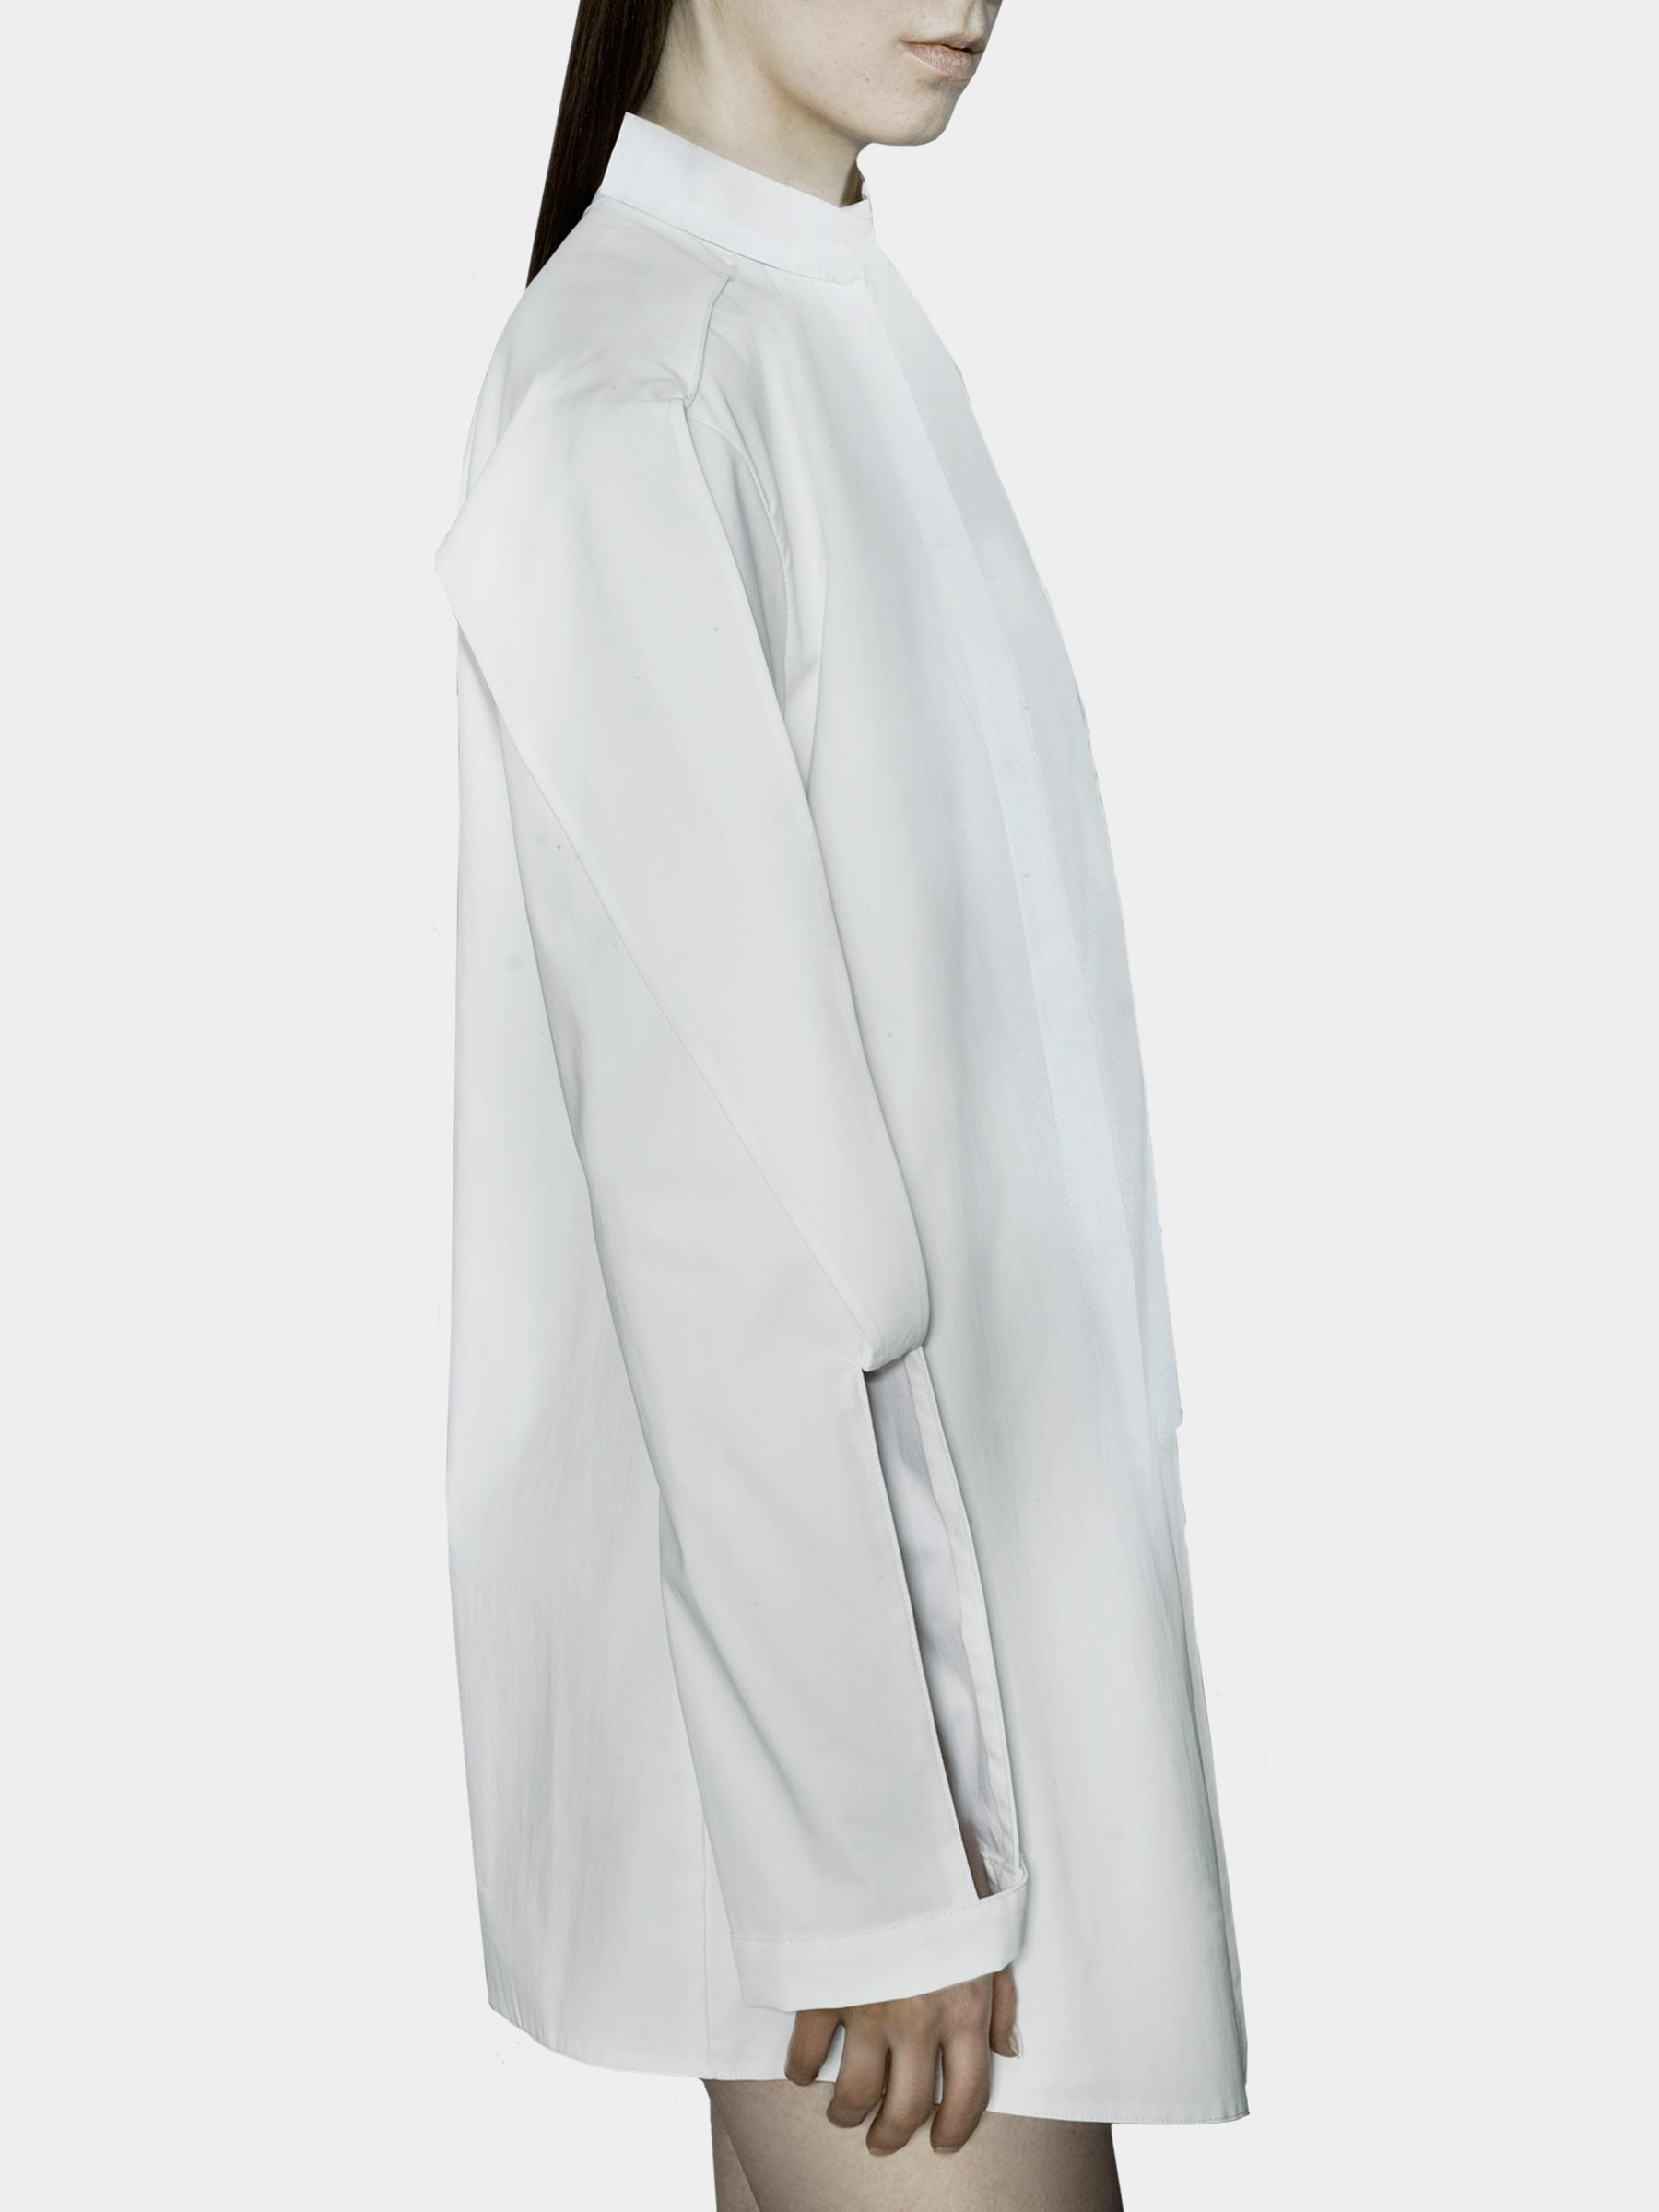 White Shirt - Joanna Organisciak - Cotton - utopiast.com